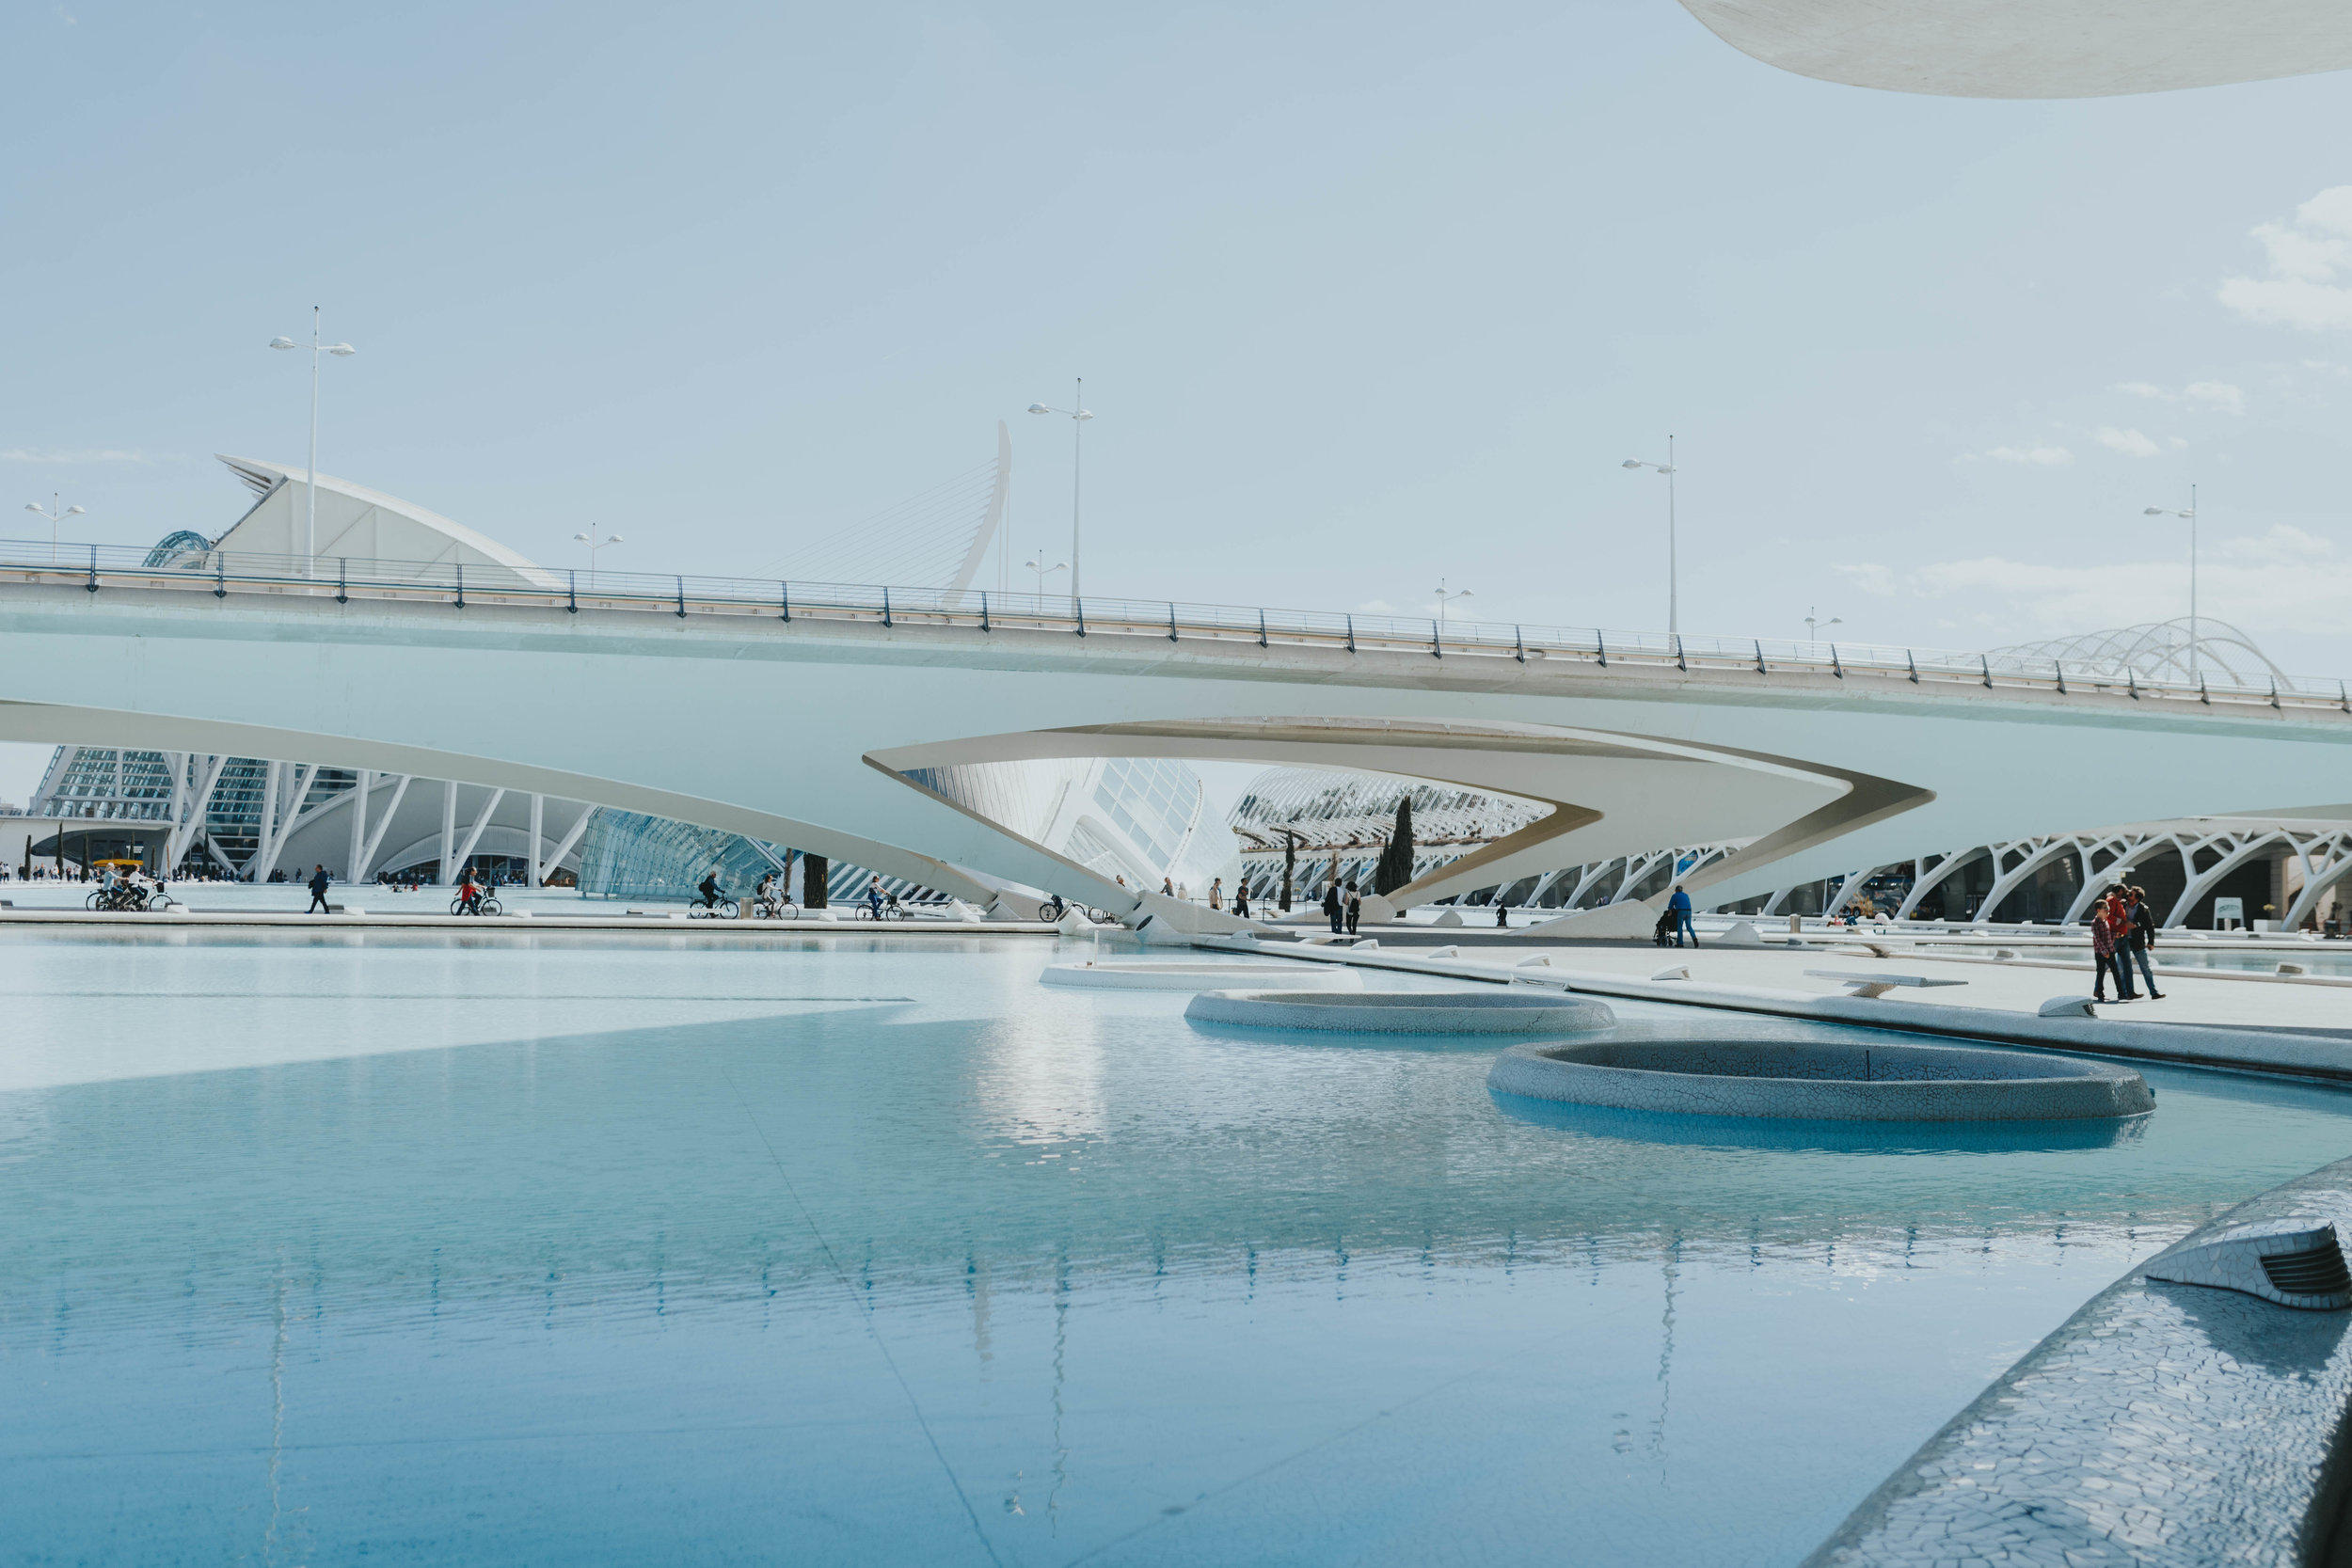 The pools in Valencia Spain during the summer gorgeous things to do on a hot sunny day